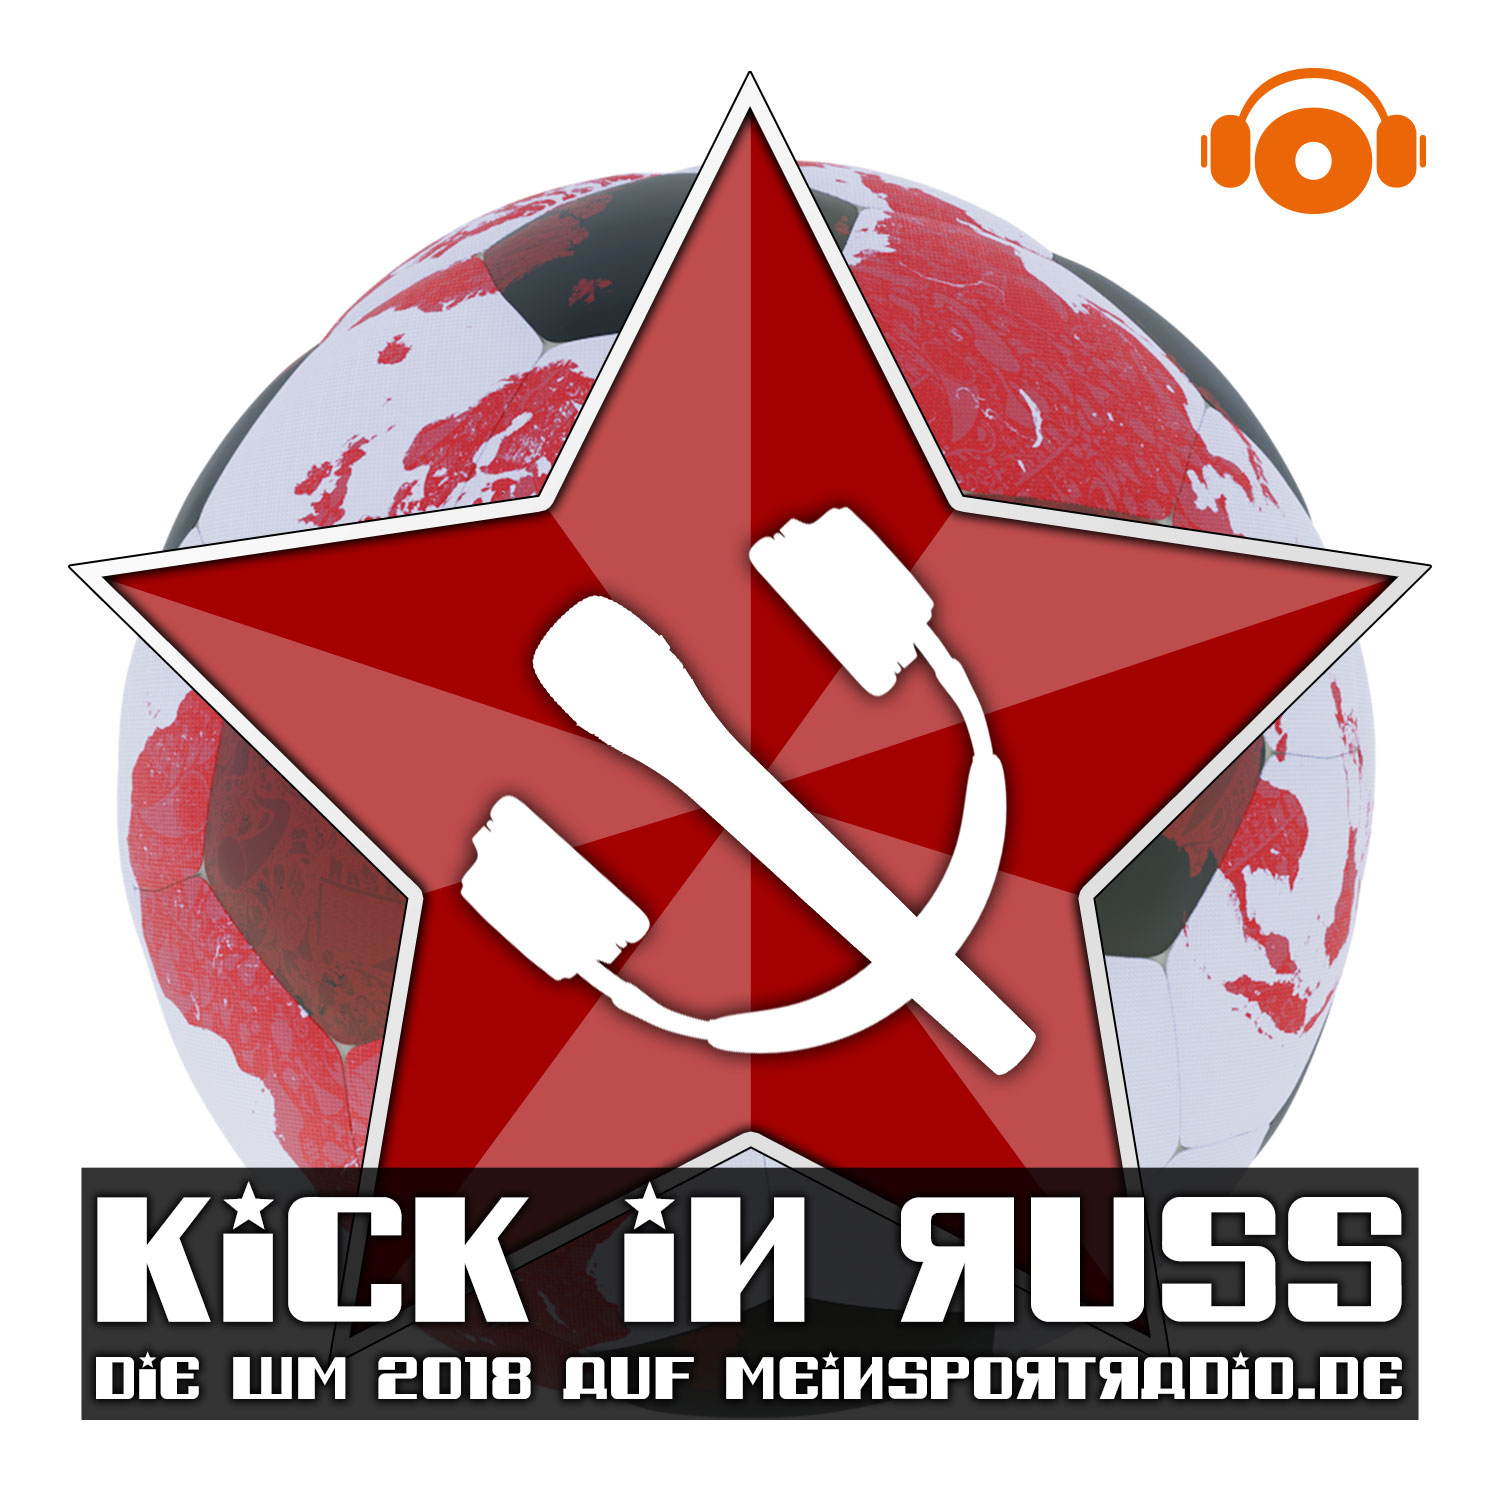 Kick in Russ - Die WM 2018